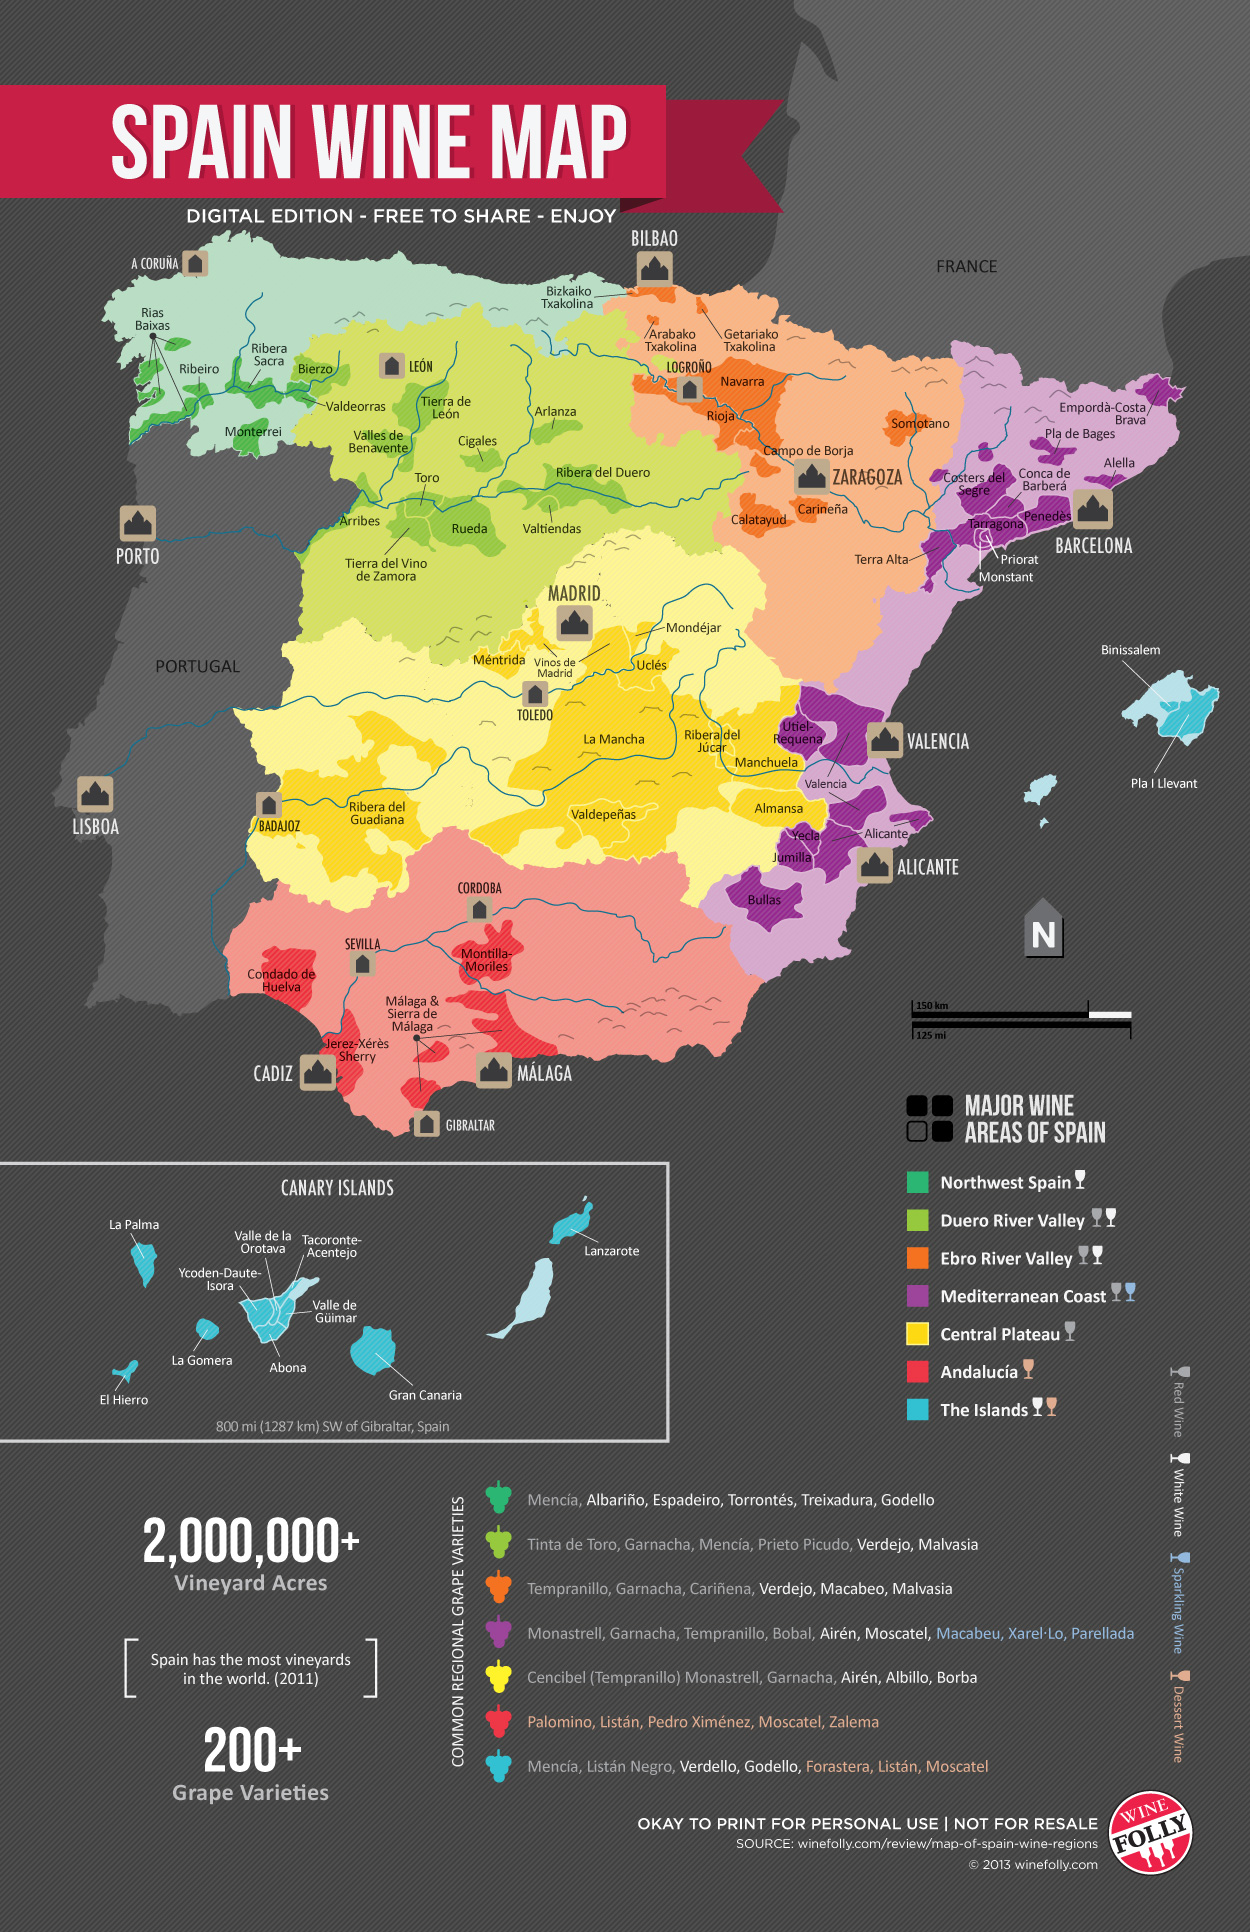 spain-wine-region-map-wine-folly.jpg